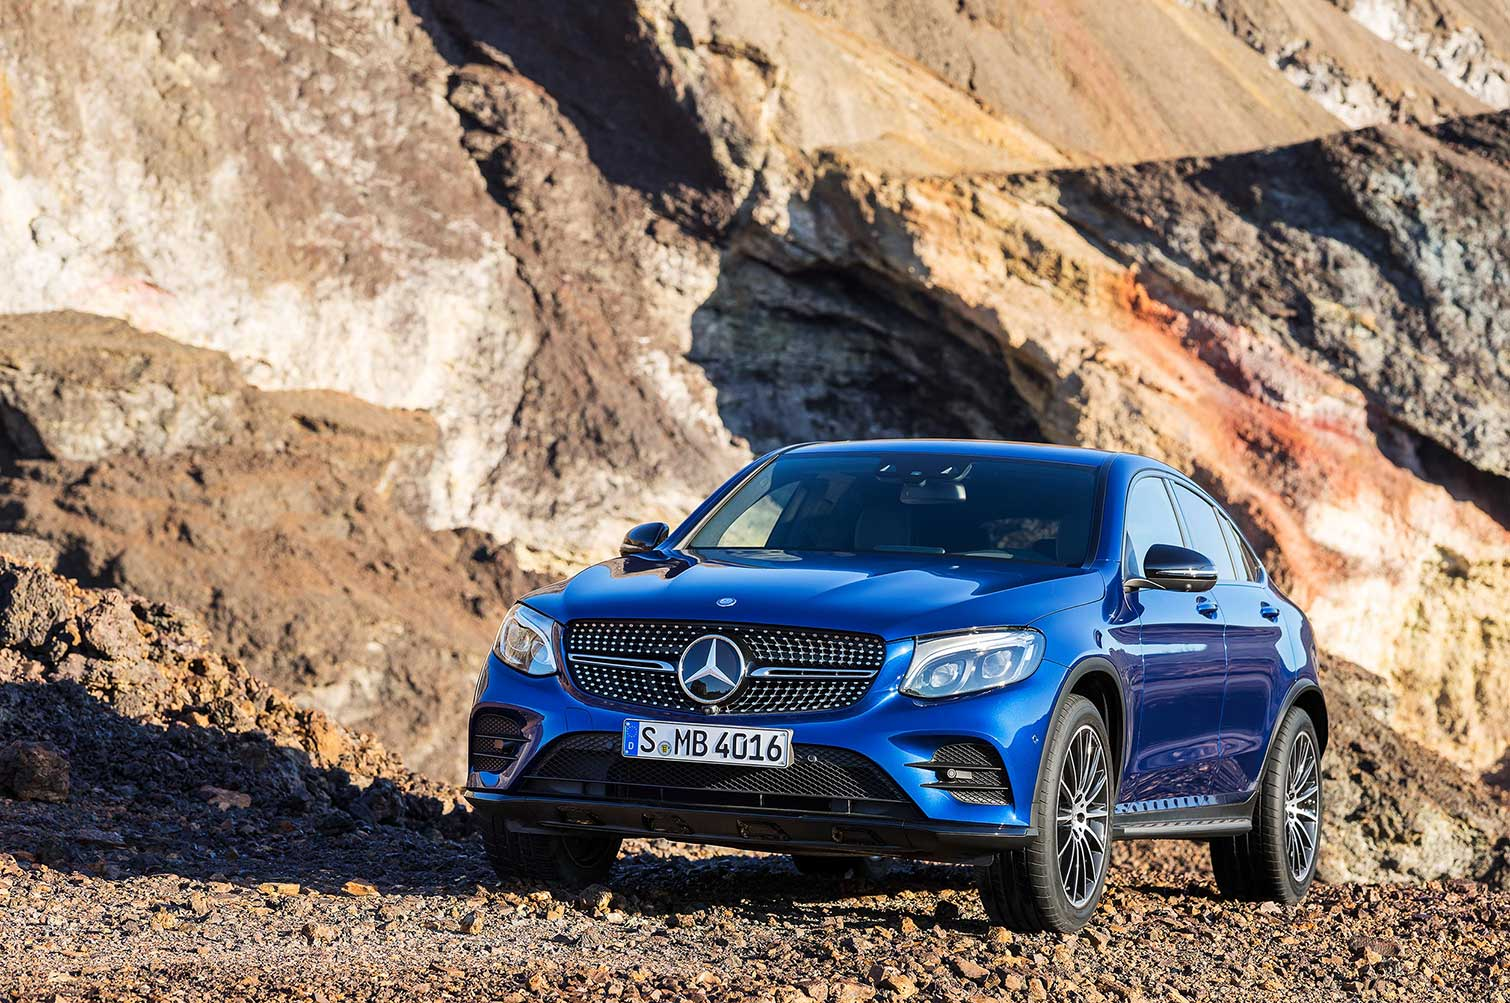 2018 mercedes benz glc class coupe 300 4matic coup price in uae specs review in dubai abu